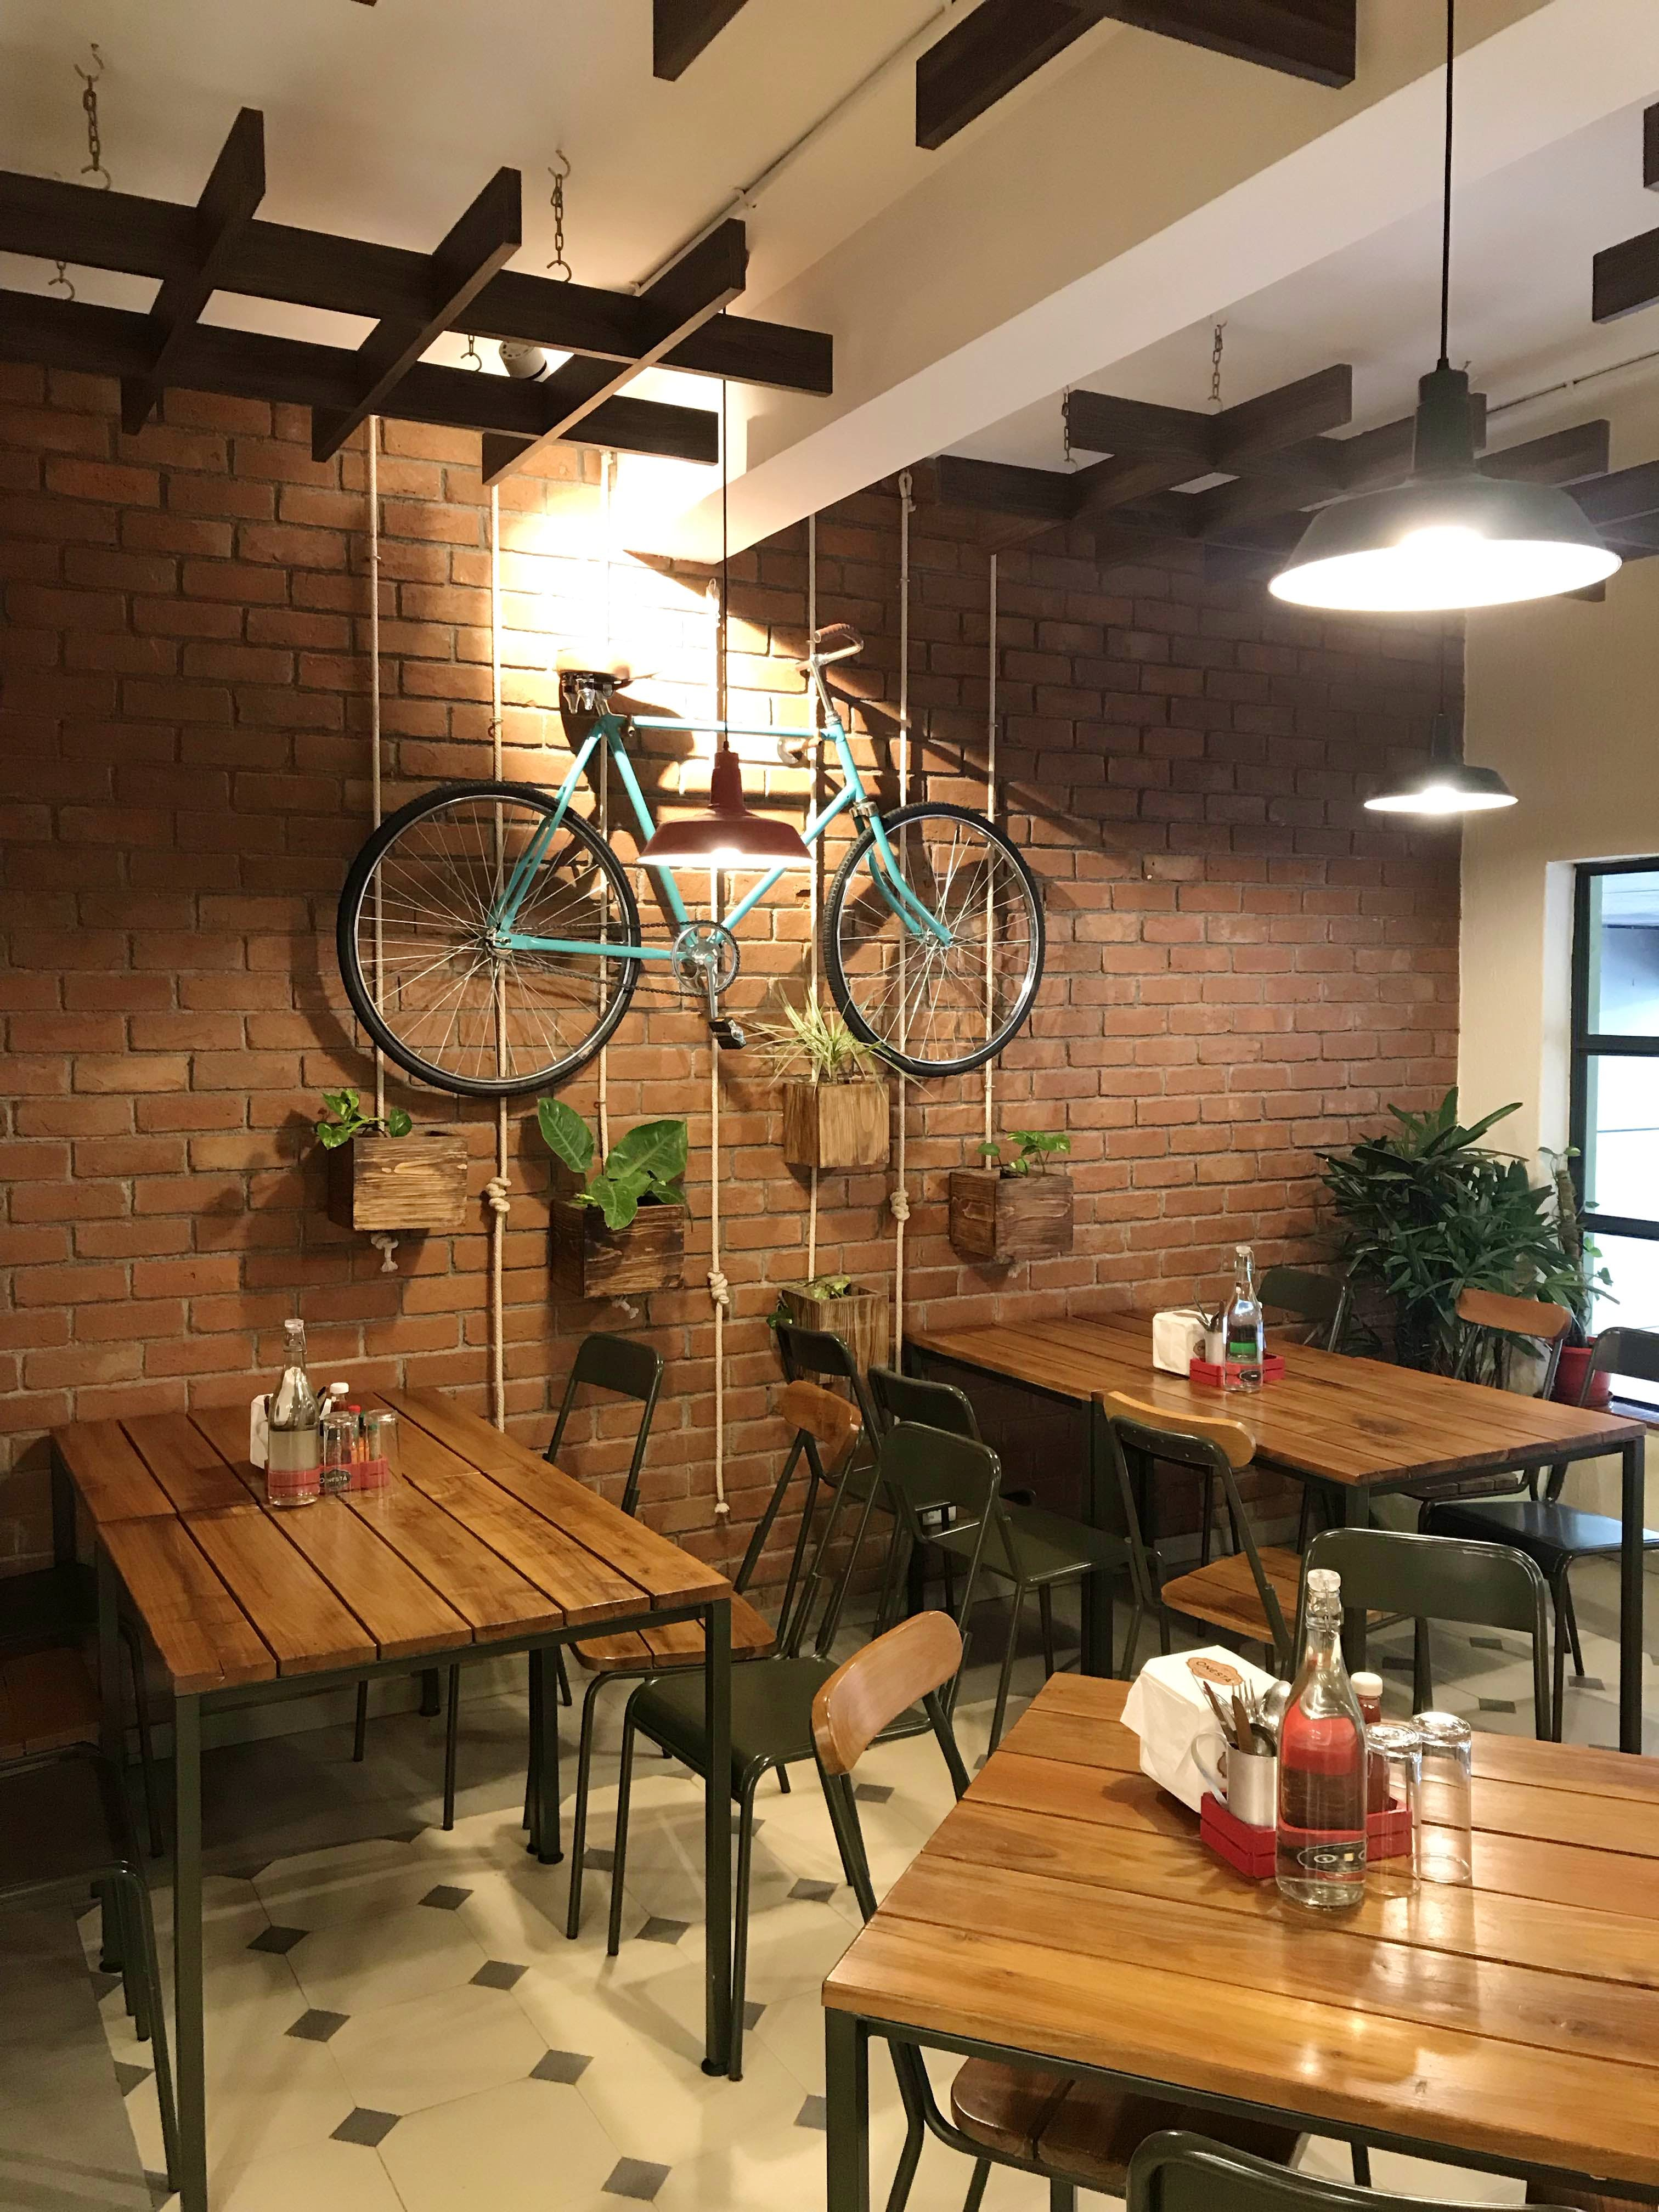 Room,Table,Building,Interior design,Ceiling,Furniture,Restaurant,Café,Bicycle,Bicycle wheel